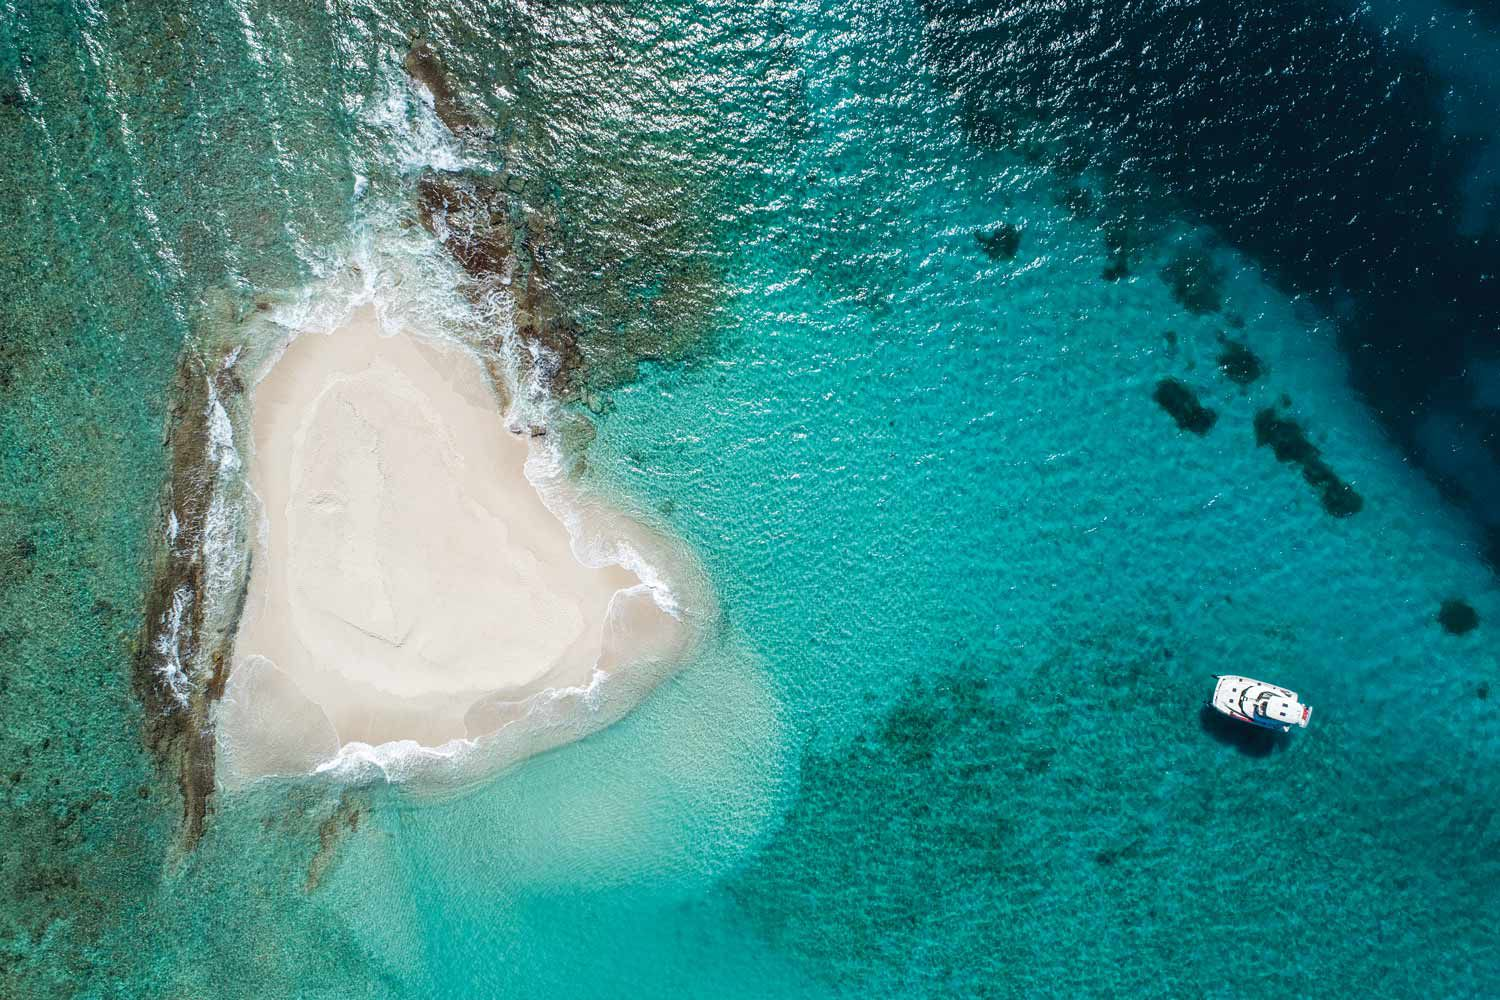 The author's chartered Aquila 44 approaches Sandy Spit, a sandbar just off Jost Van Dyke.